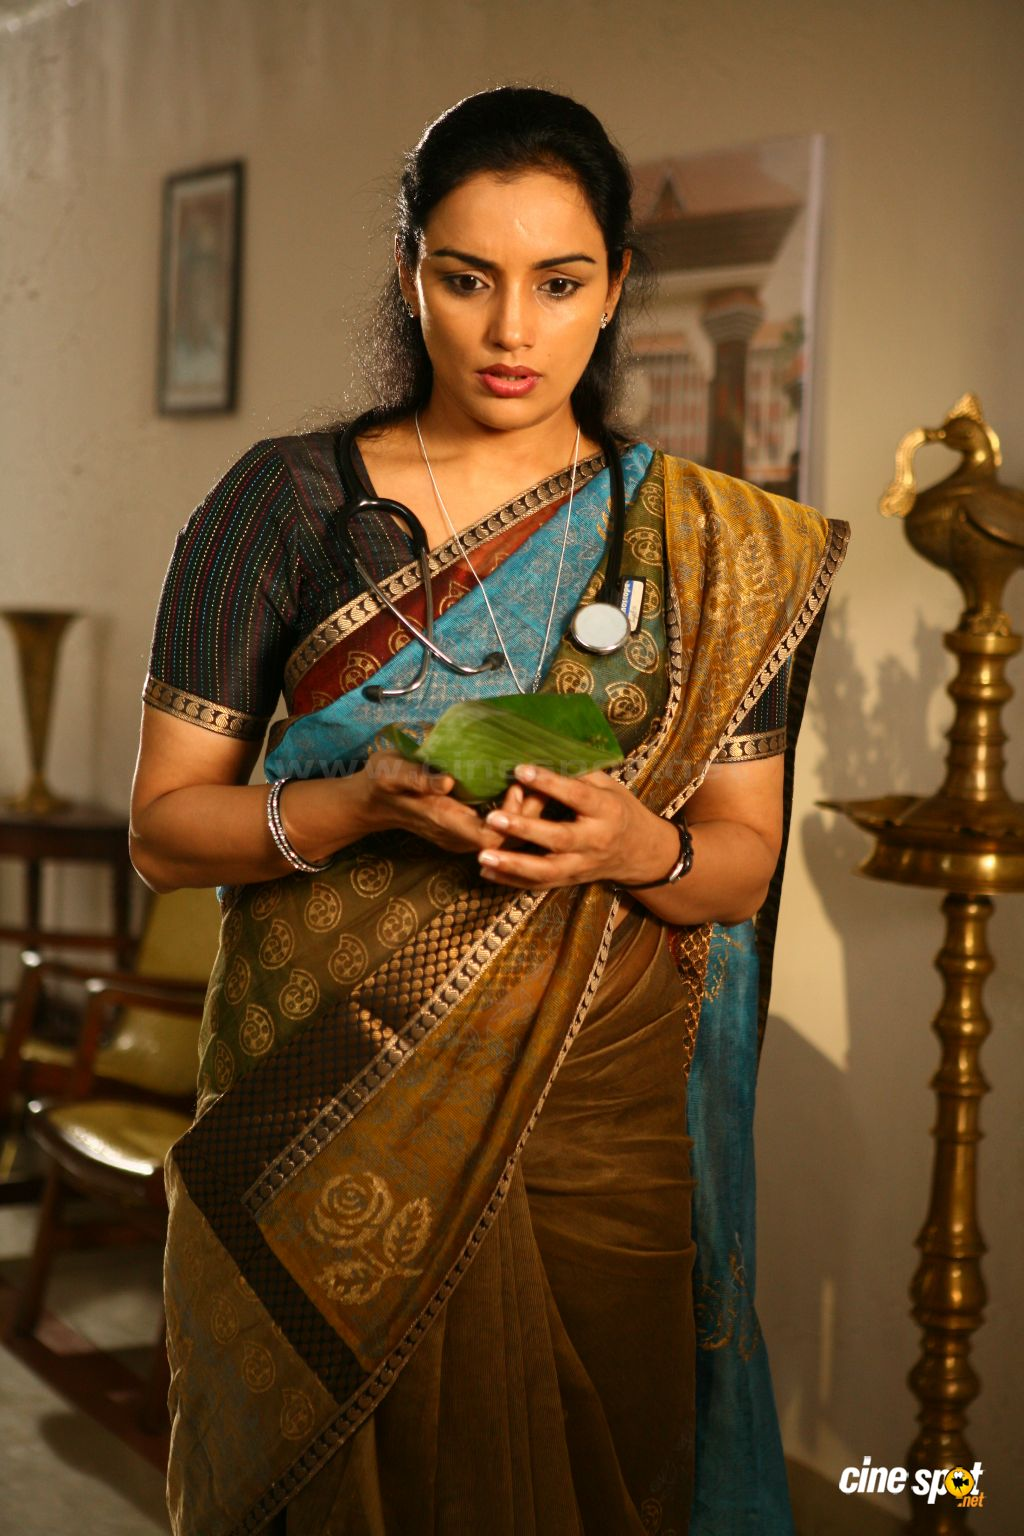 Pin Swetha Menon Wearing Mulakkacha Like Mundu Without Blouse on ...